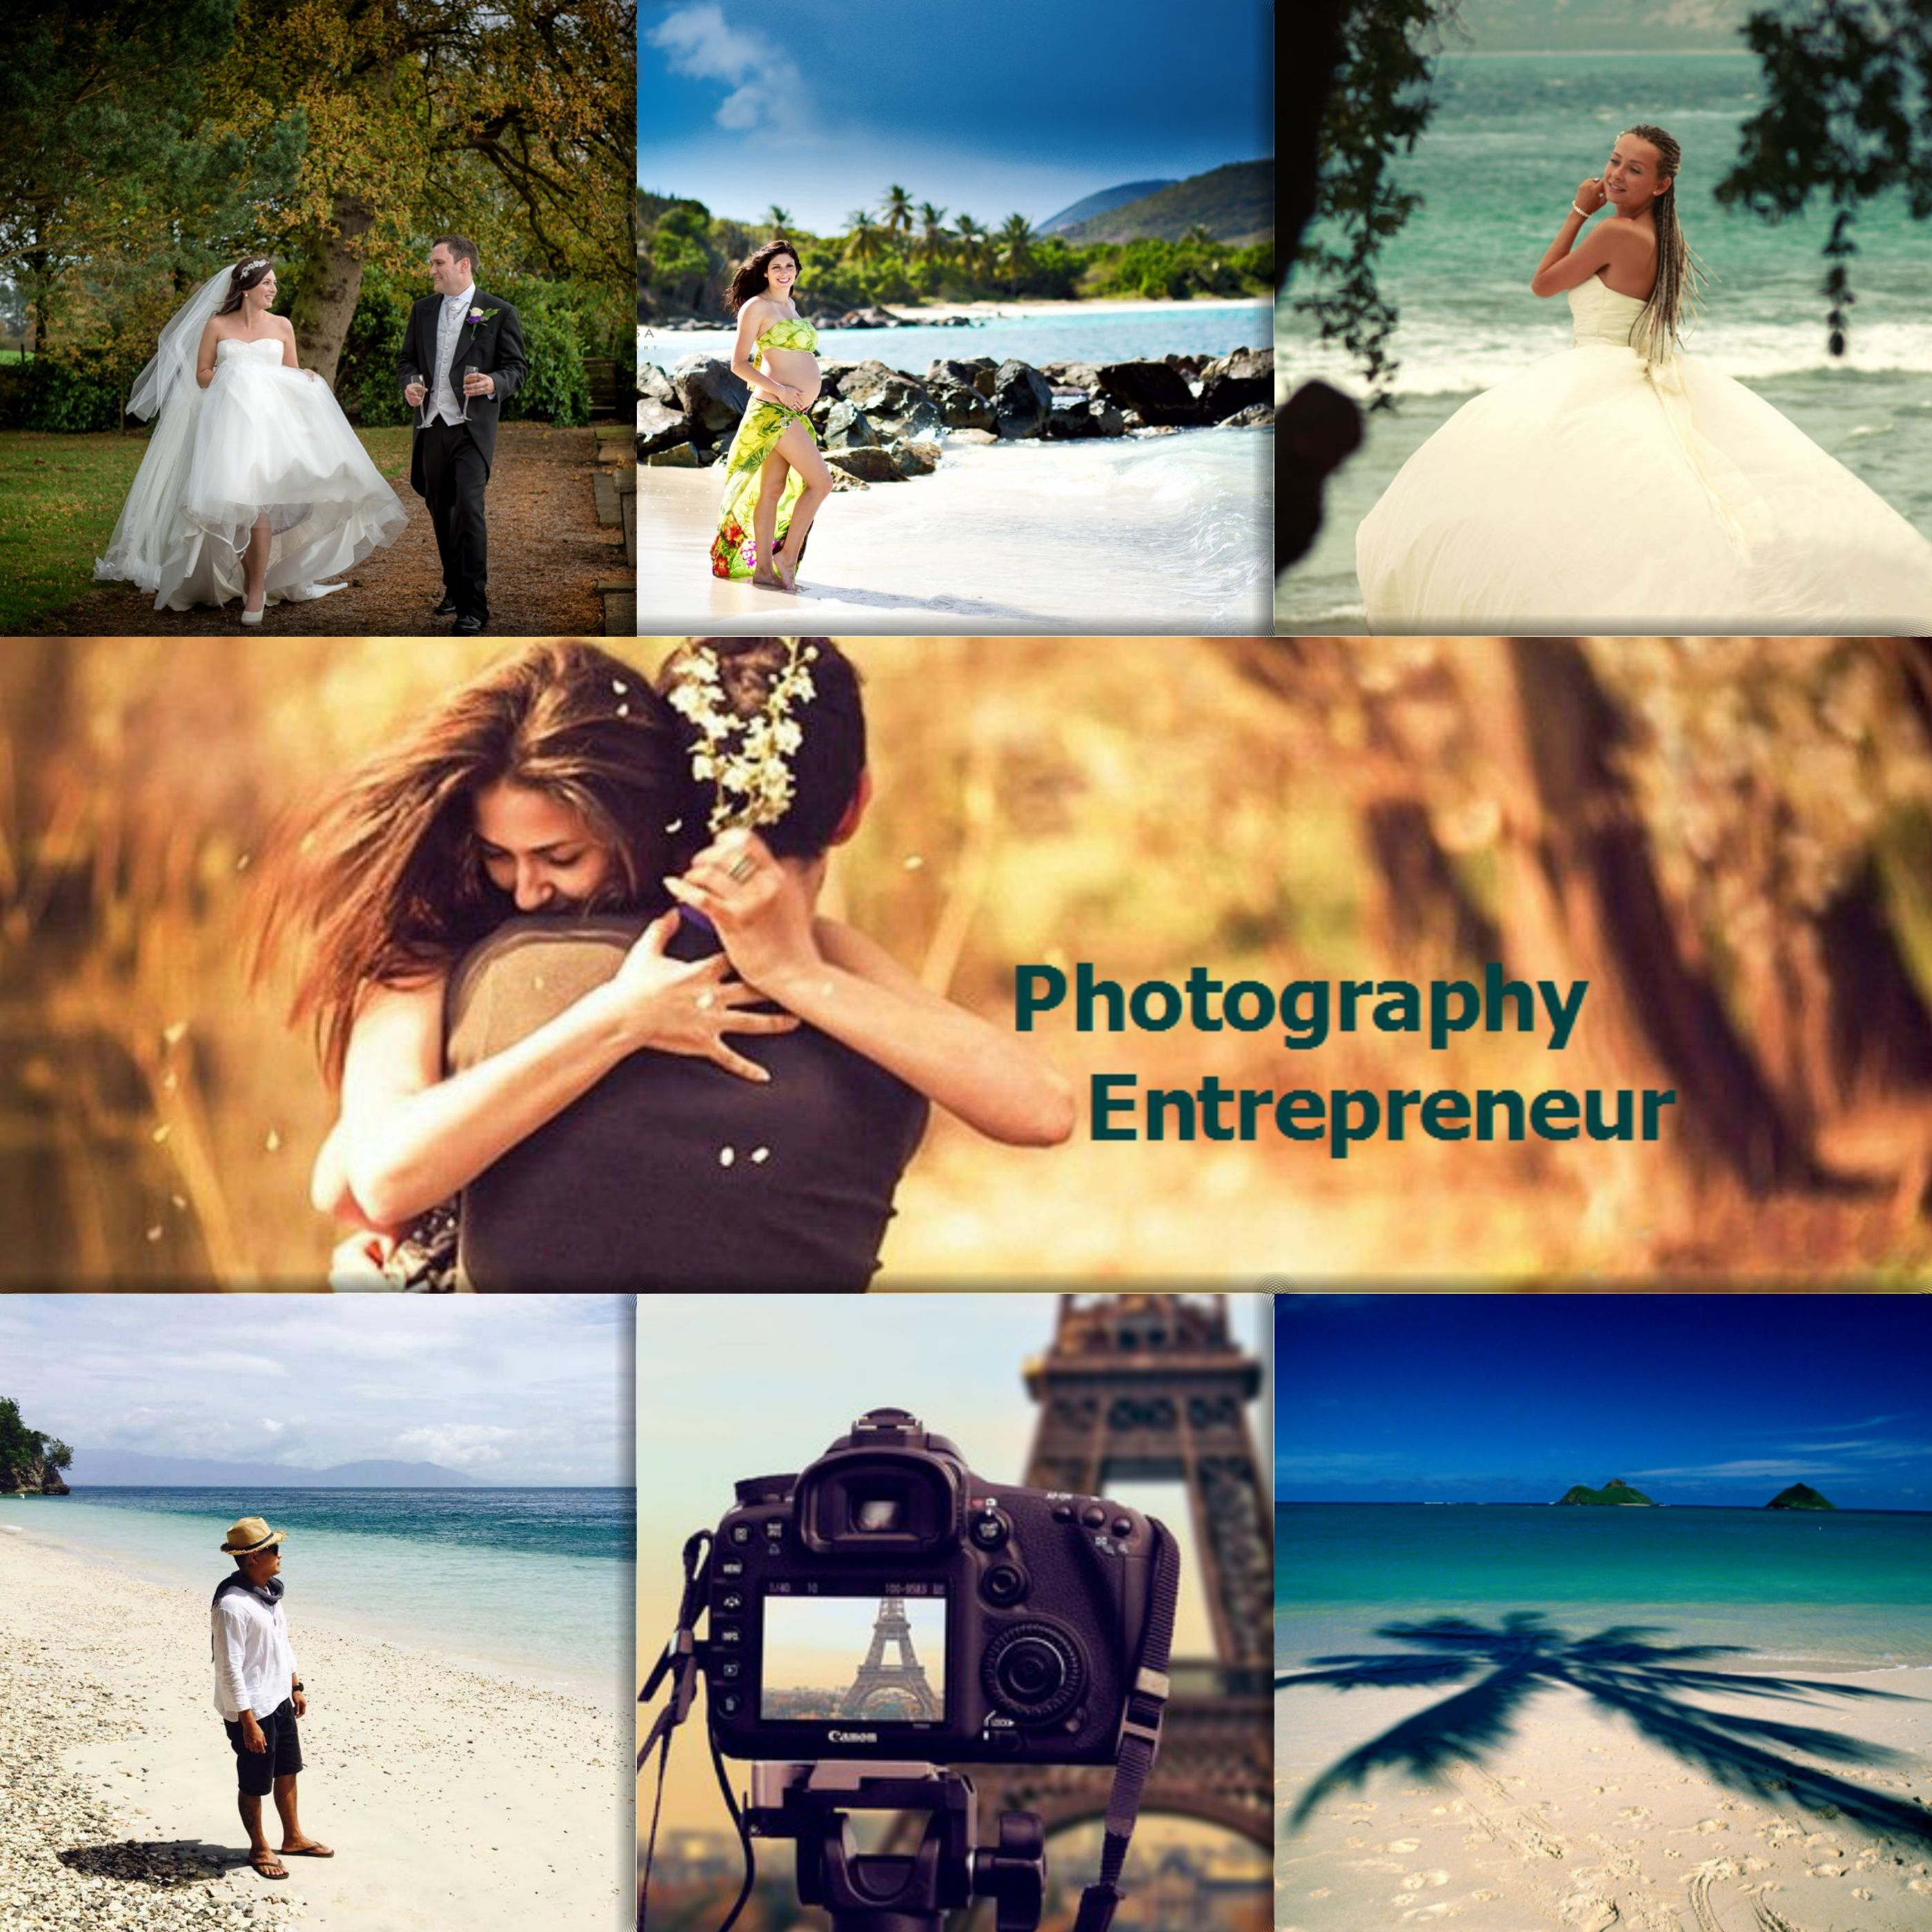 Everyone has a digital camera, they need someone to teach them how to take a great photoS. Become a Photographer in just 9 months! #MyCAA is open to #militaryspouses who are married to active duty service member, with pay grade of E5 and below, W1-W2, and 01-02. Want to know more? Just send me a message.If you have a Skype account, you may also add our Skype ID: eca.benefitssupport or you may reach us thru our Toll Free Number: 1 800 606 1803. #milso